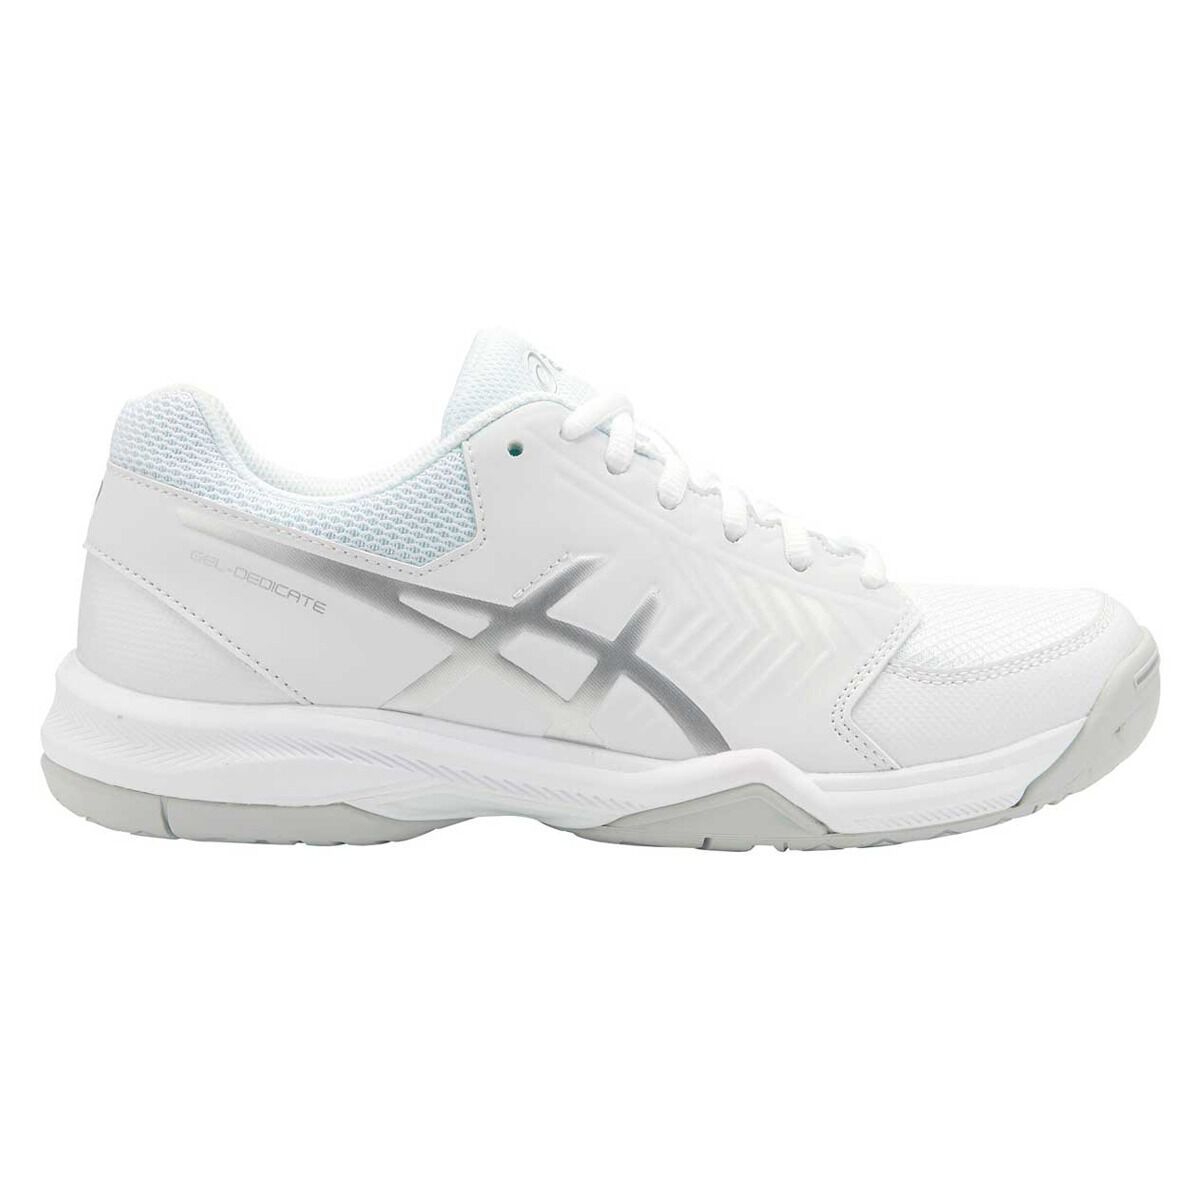 Sport Rebel Gel Tennis Hardcourt Shoes Dedicate 5 Asics Womens 8qwxZ6x4